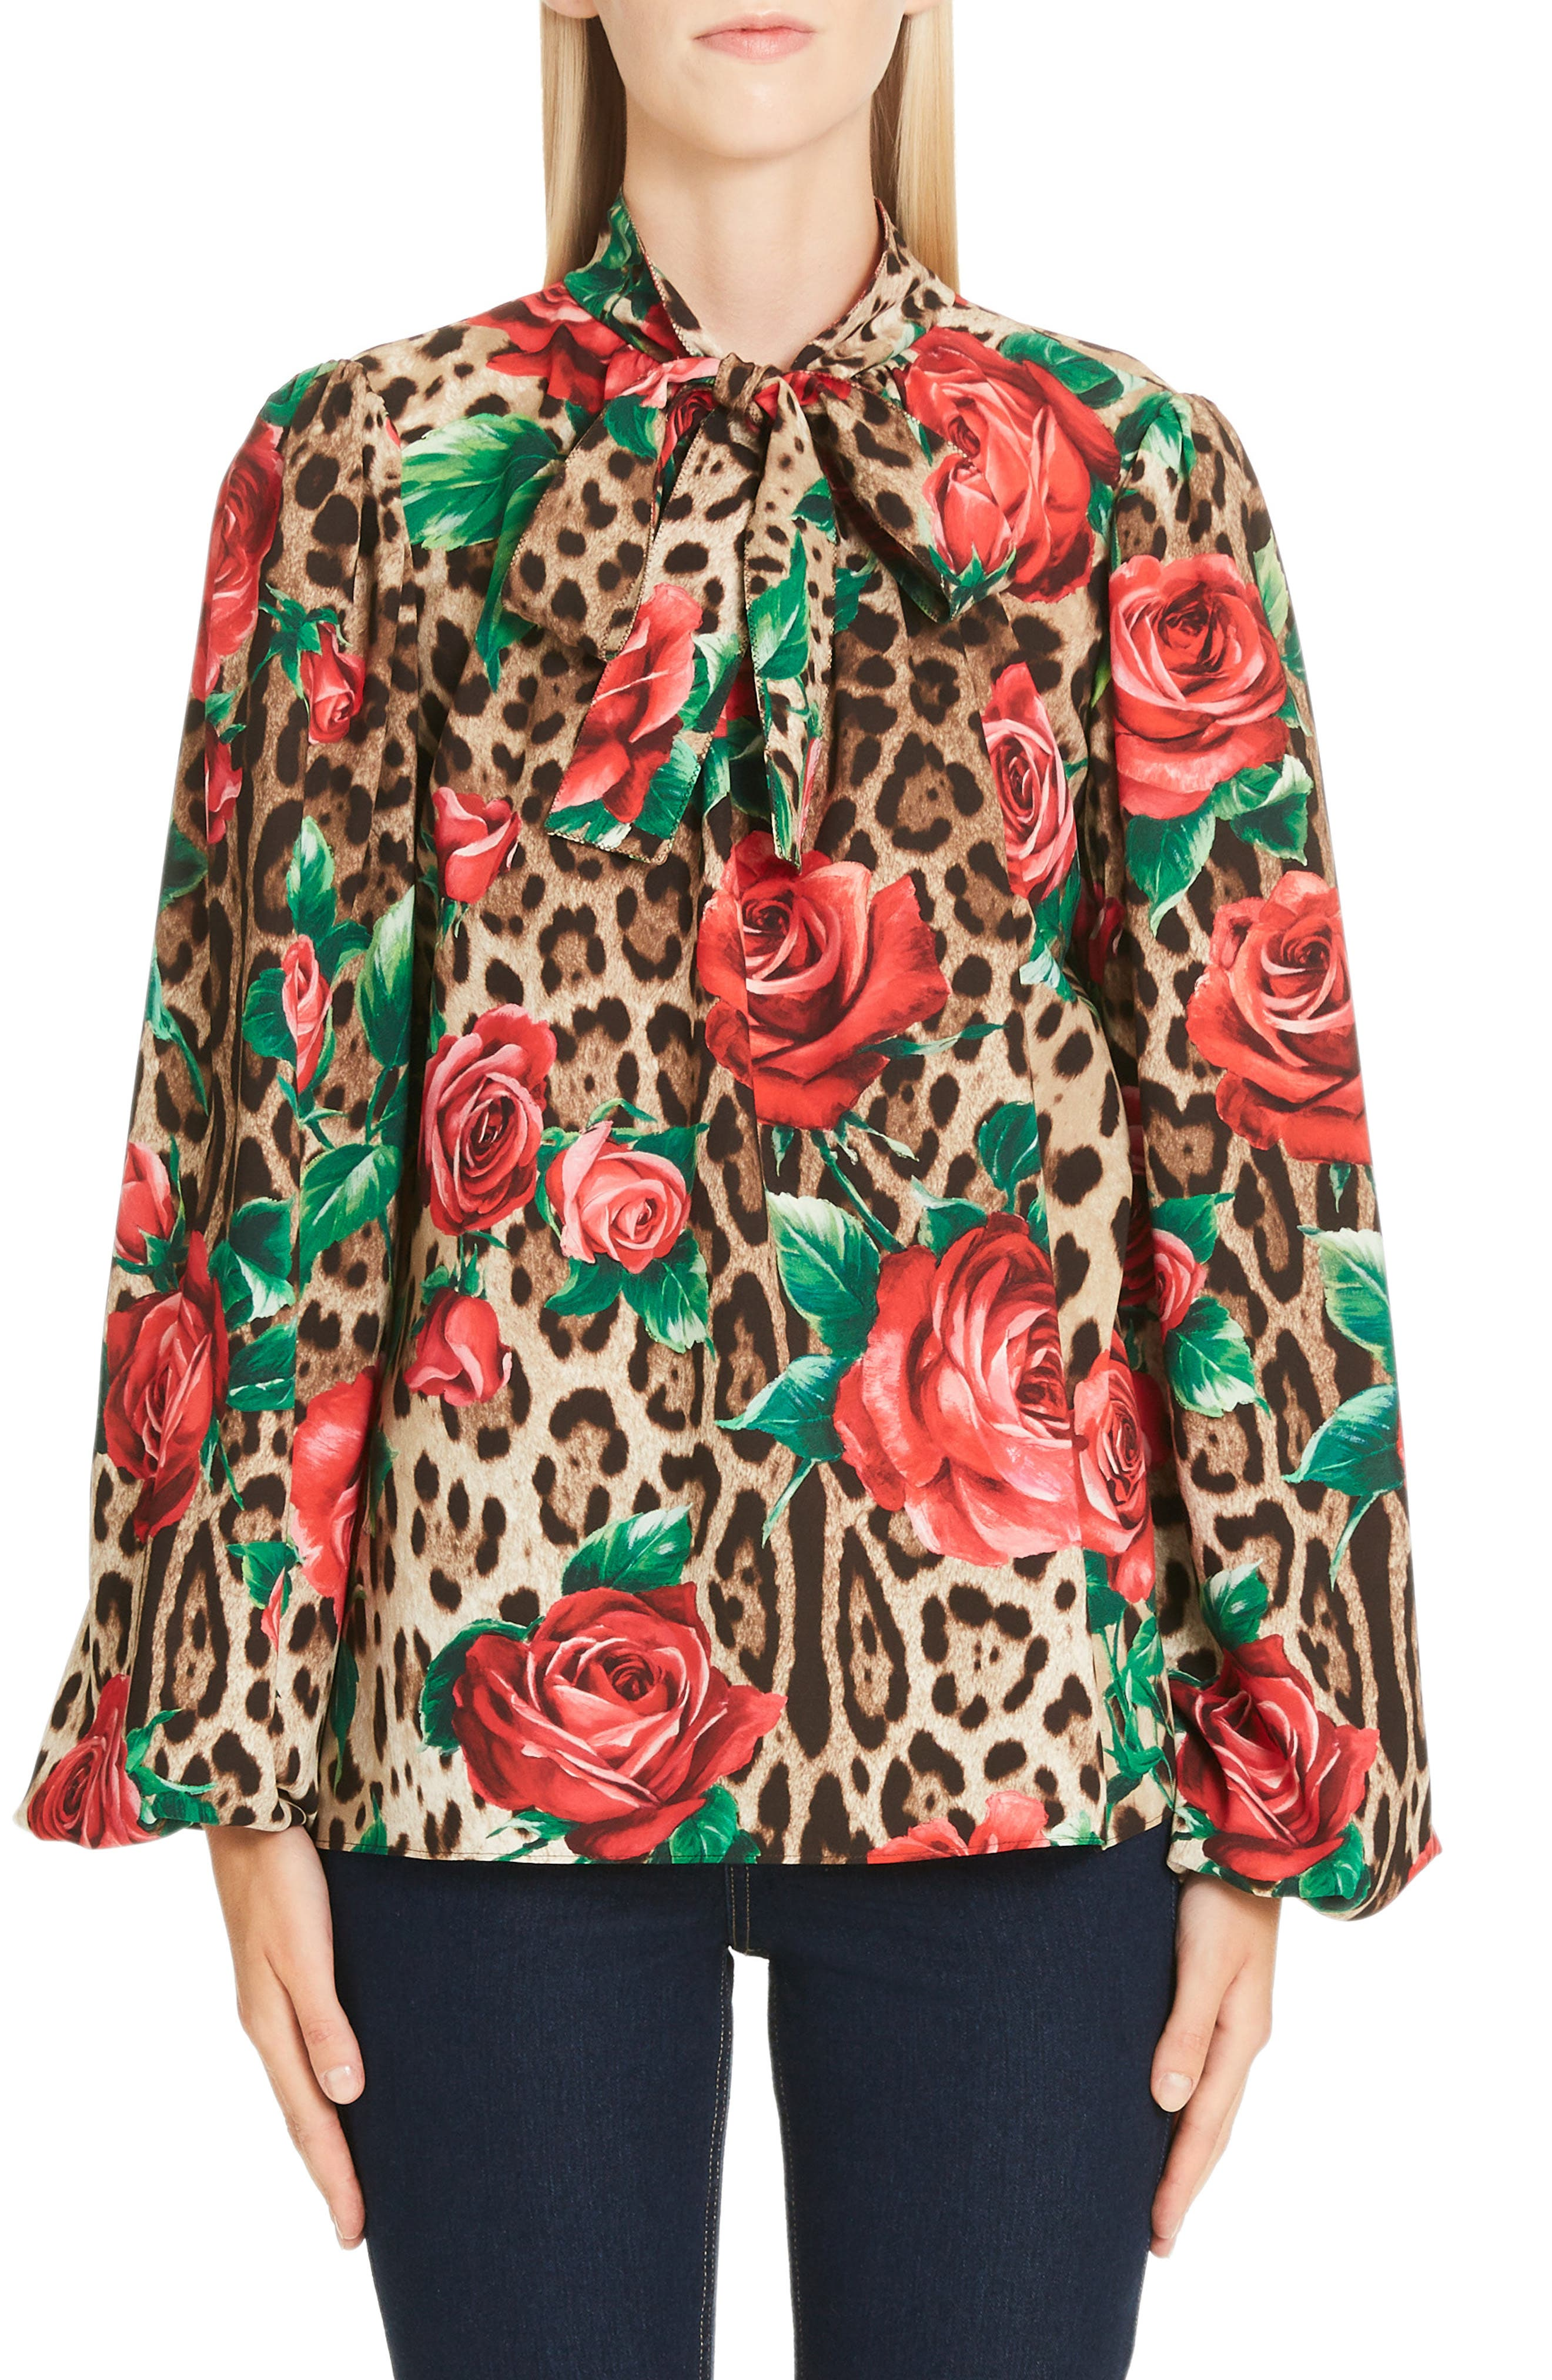 Rose & Leopard Print Tie Neck Stretch Silk Blouse,                             Main thumbnail 1, color,                             HKIRS ROSE LEO